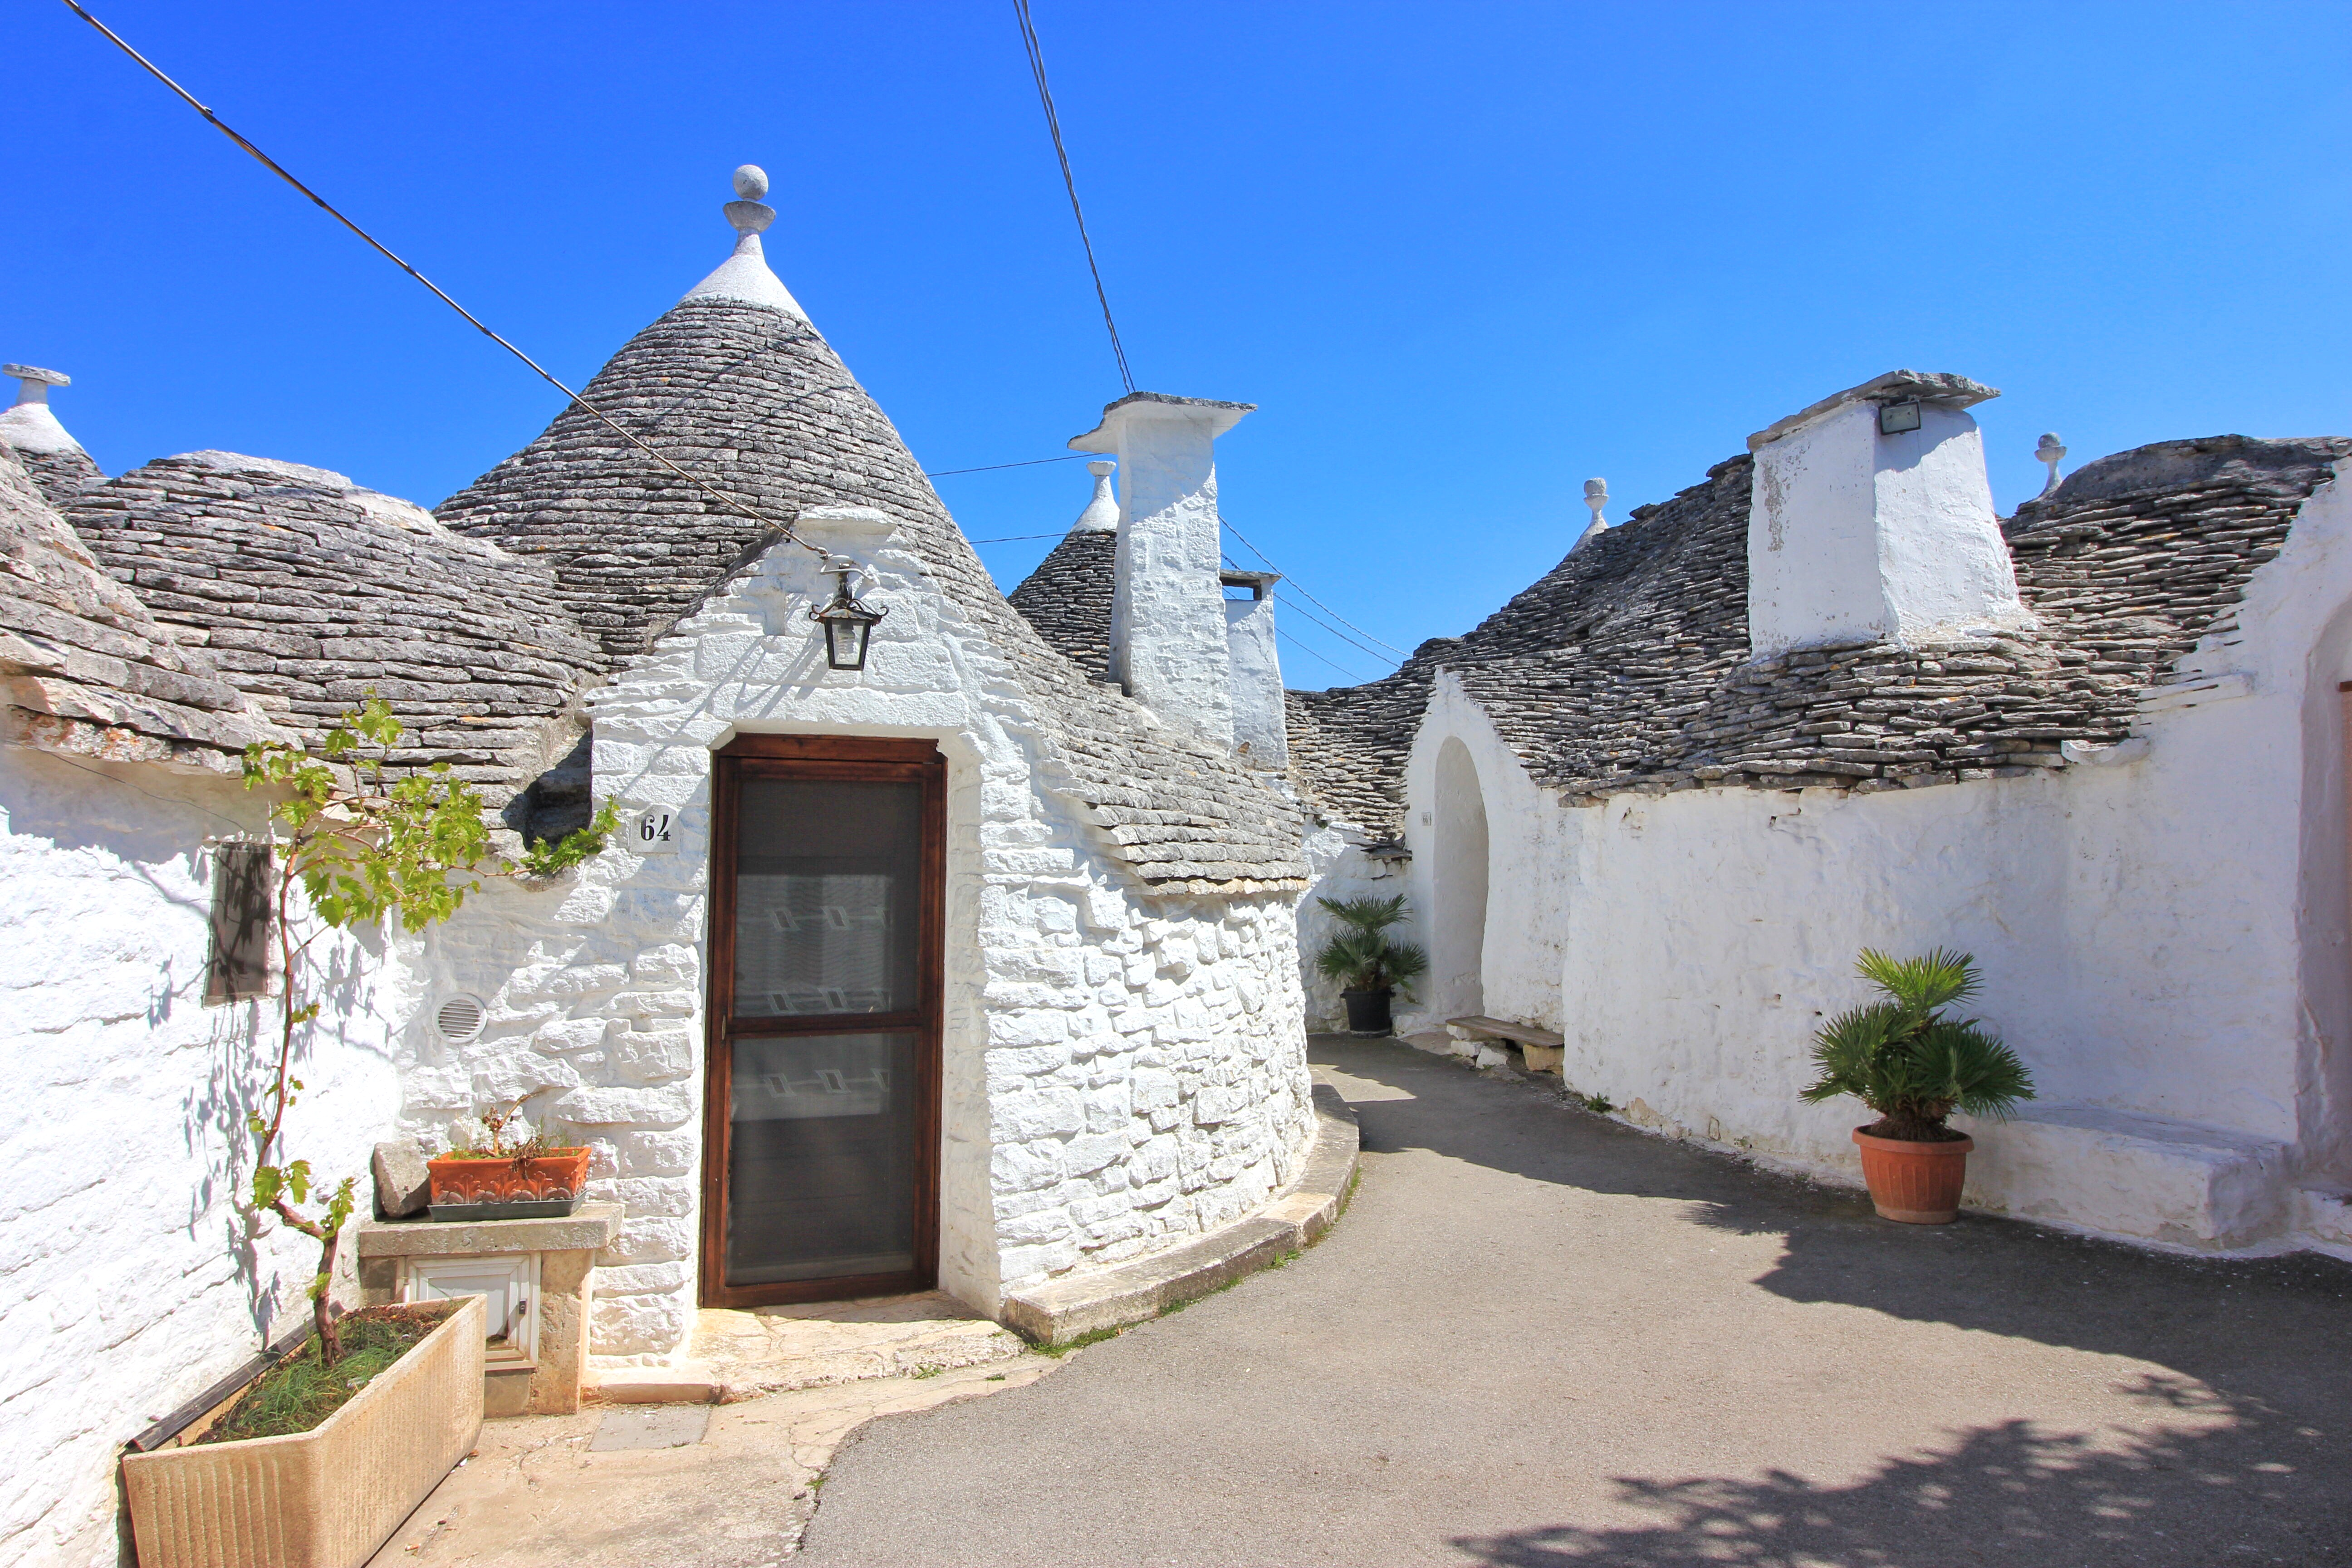 67 Photos To Inspire Your Trip To Puglia Italy - The Wanderlust Bug